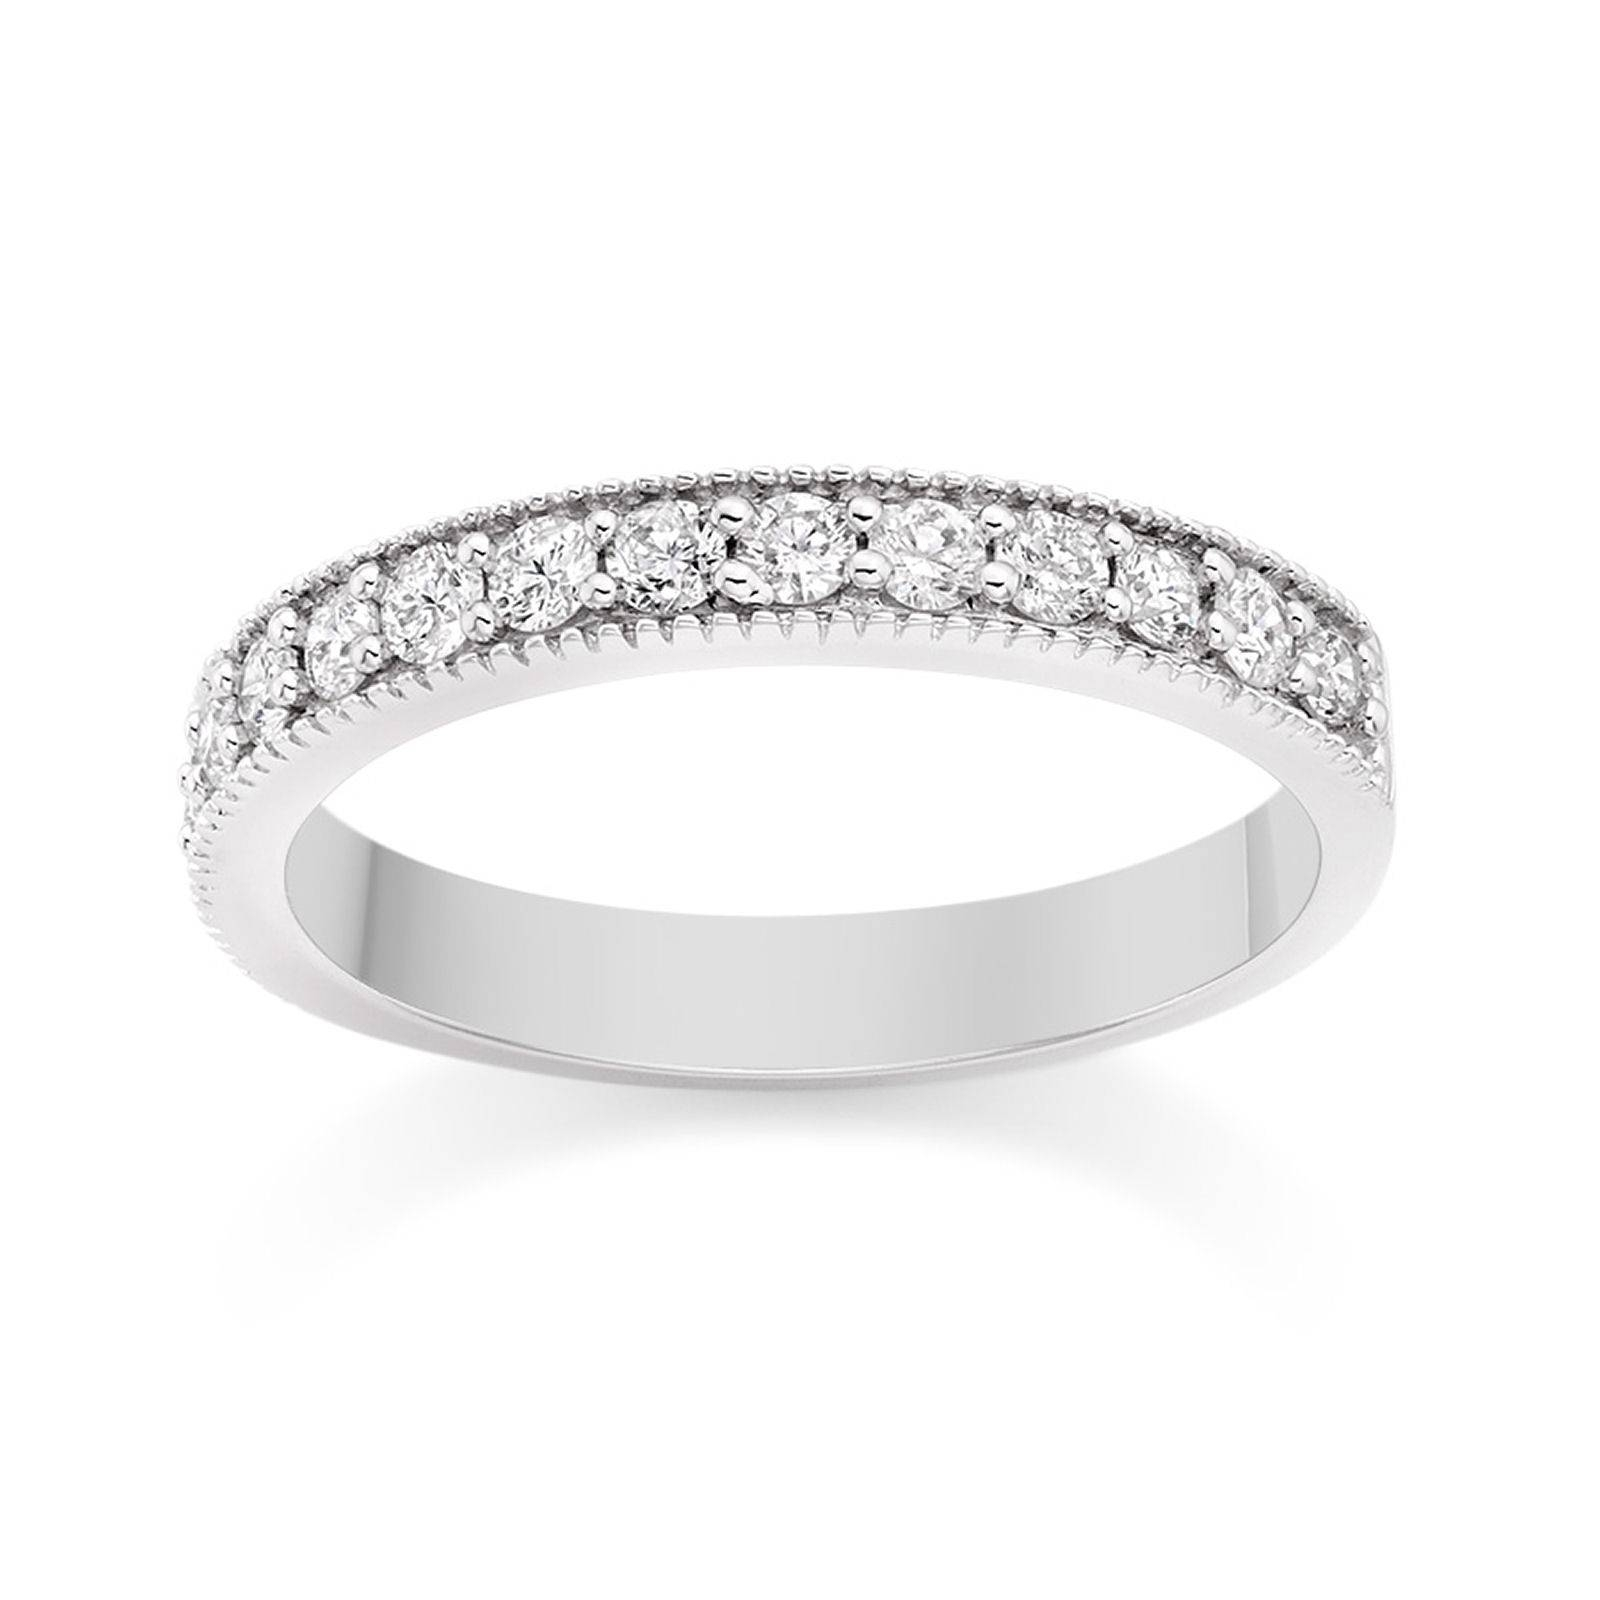 Milgrain Diamond Wedding Ring In Platinum Wedding Dress From Pertaining To Latest Platinum And Diamond Wedding Bands (View 8 of 15)